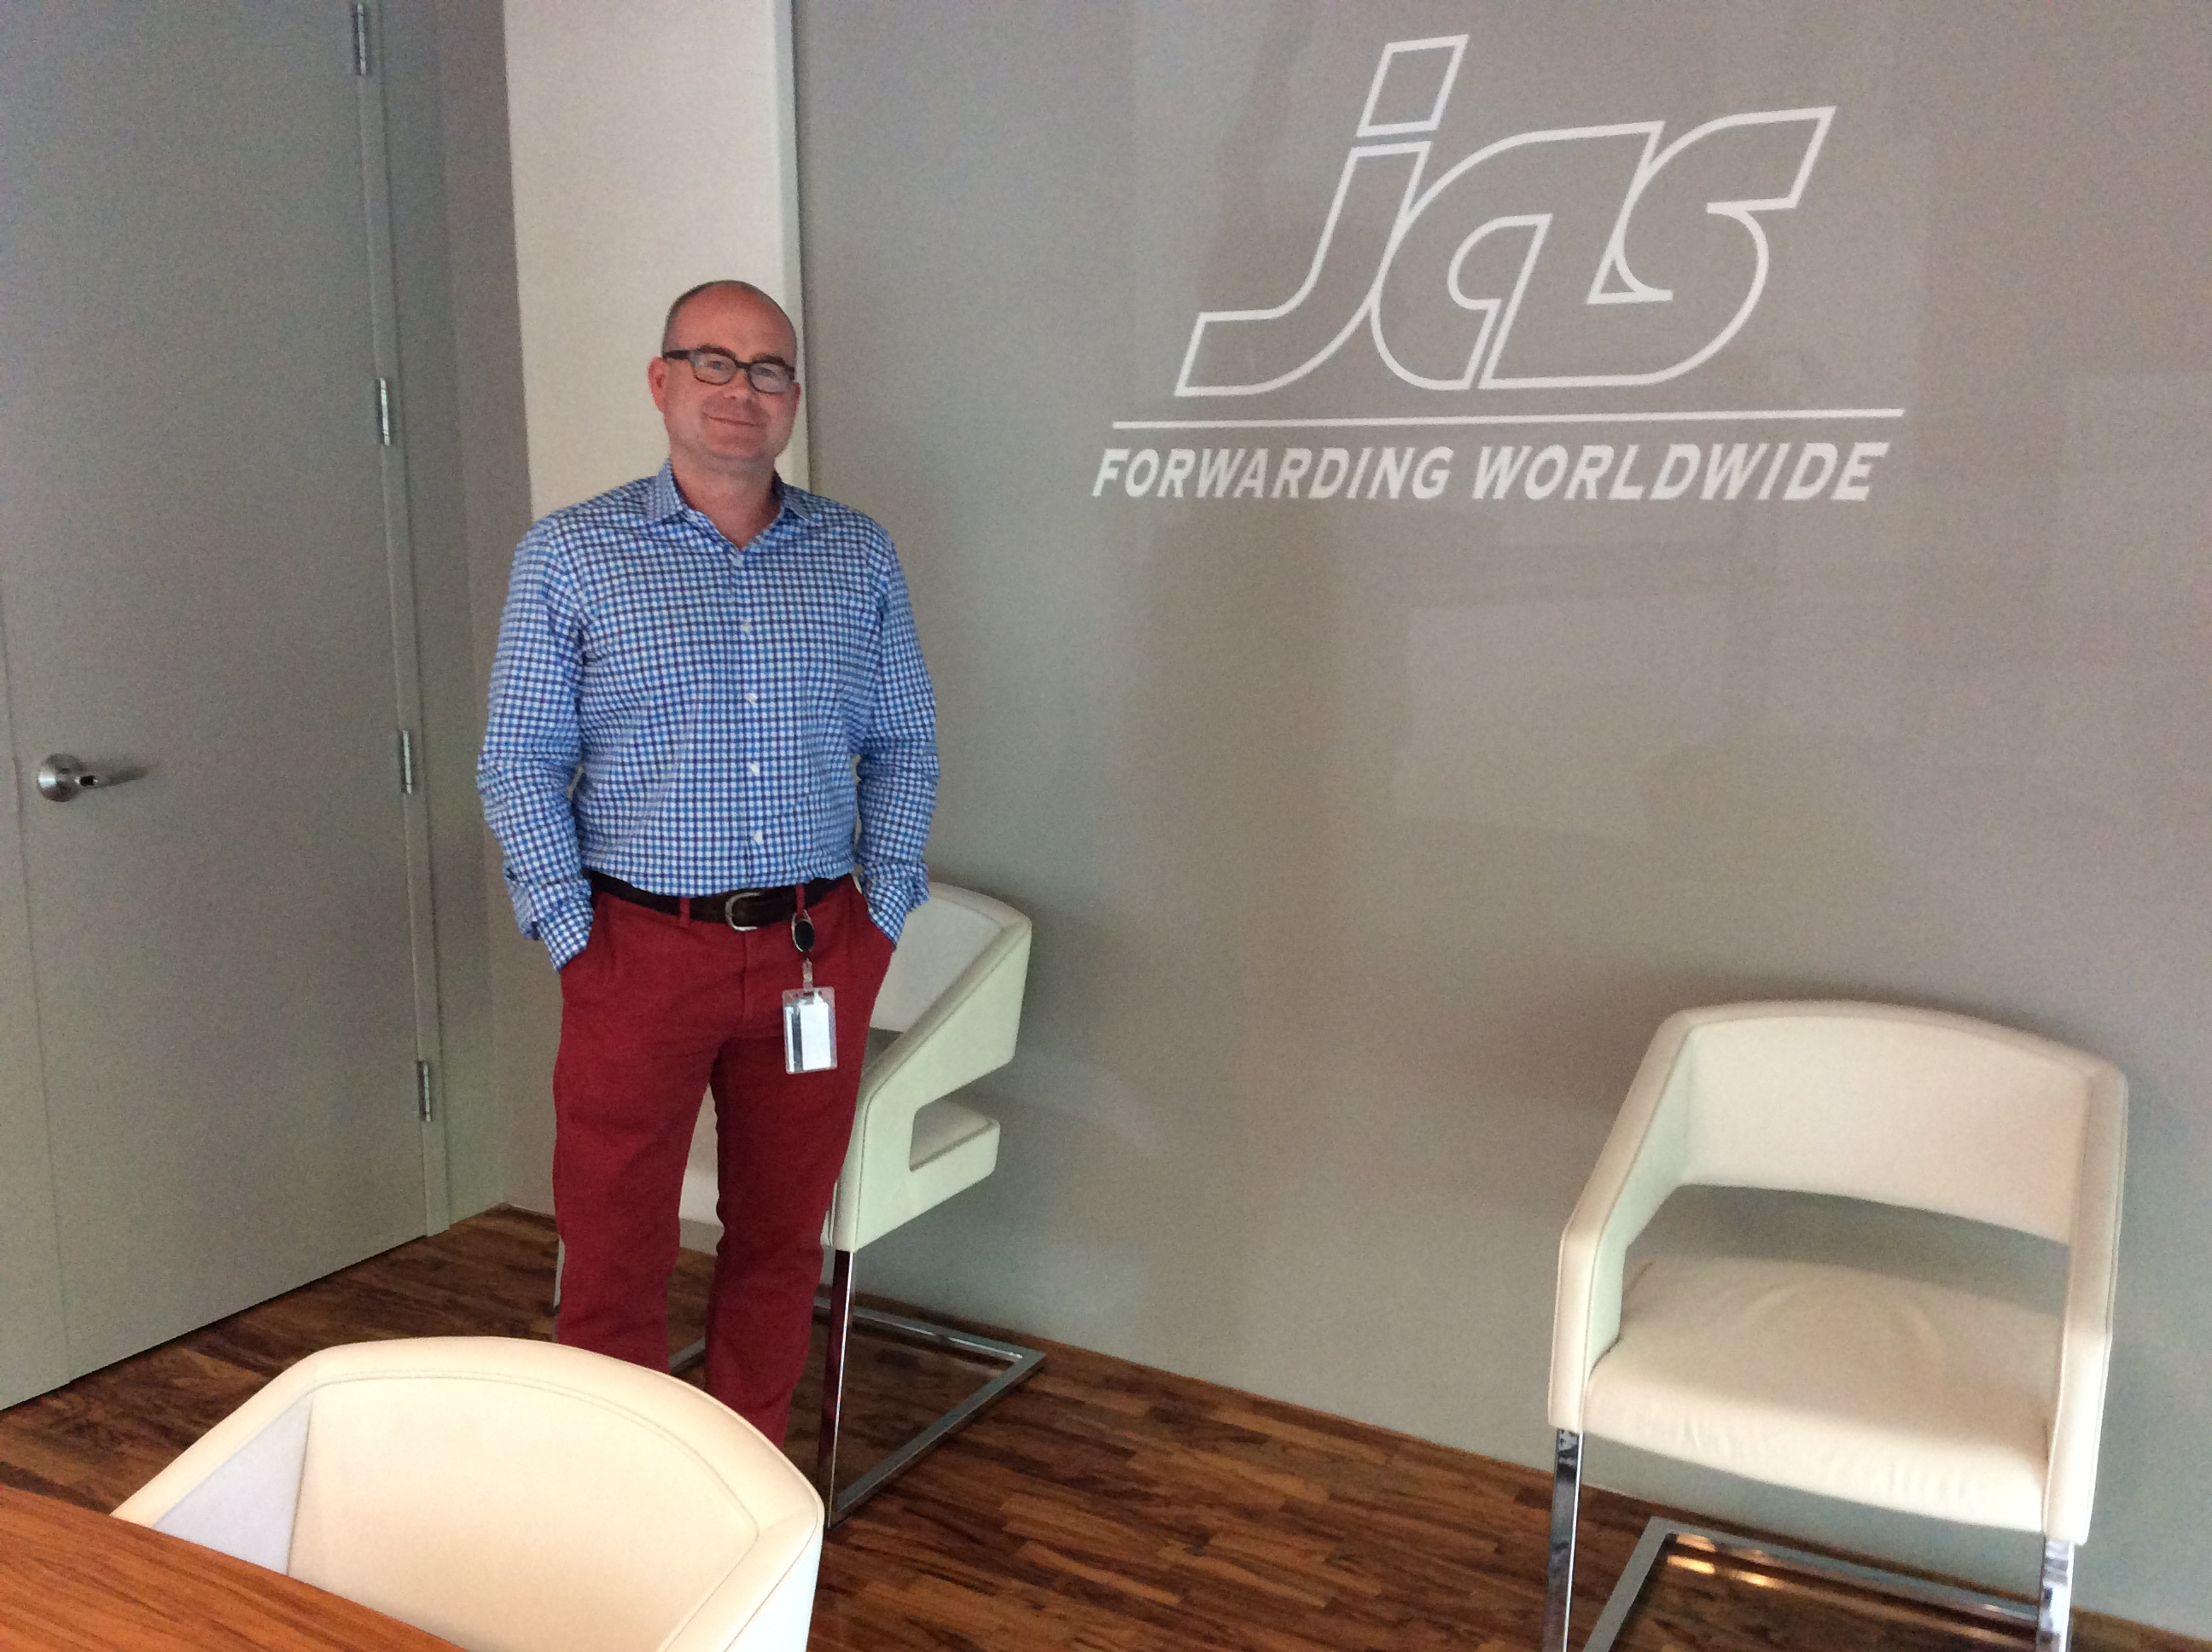 Bjoern Wiede poses in front of JAS logo